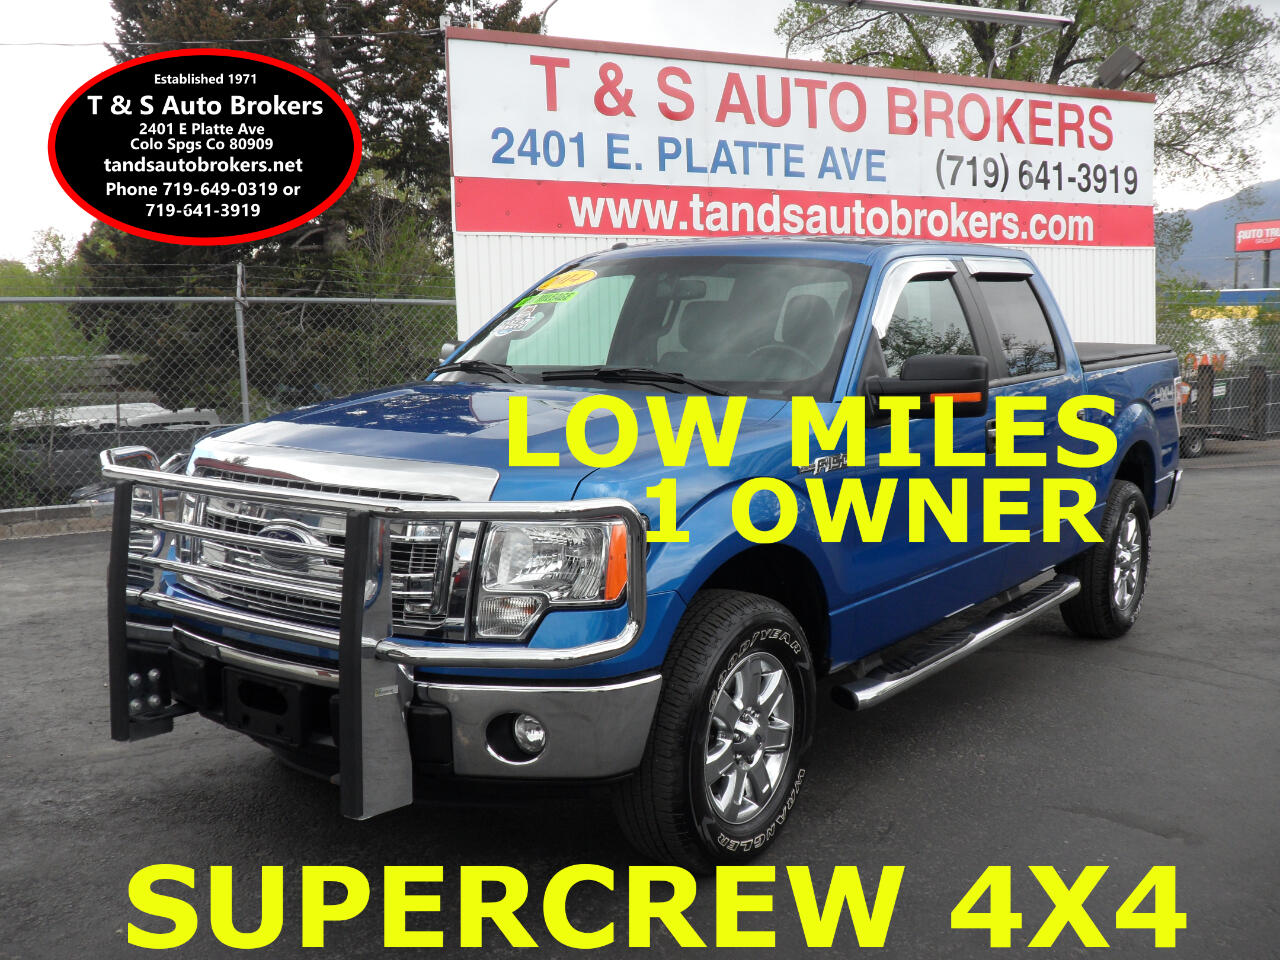 2014 Ford F-150 LOW MILE XLT 4X4 SUPERCREW